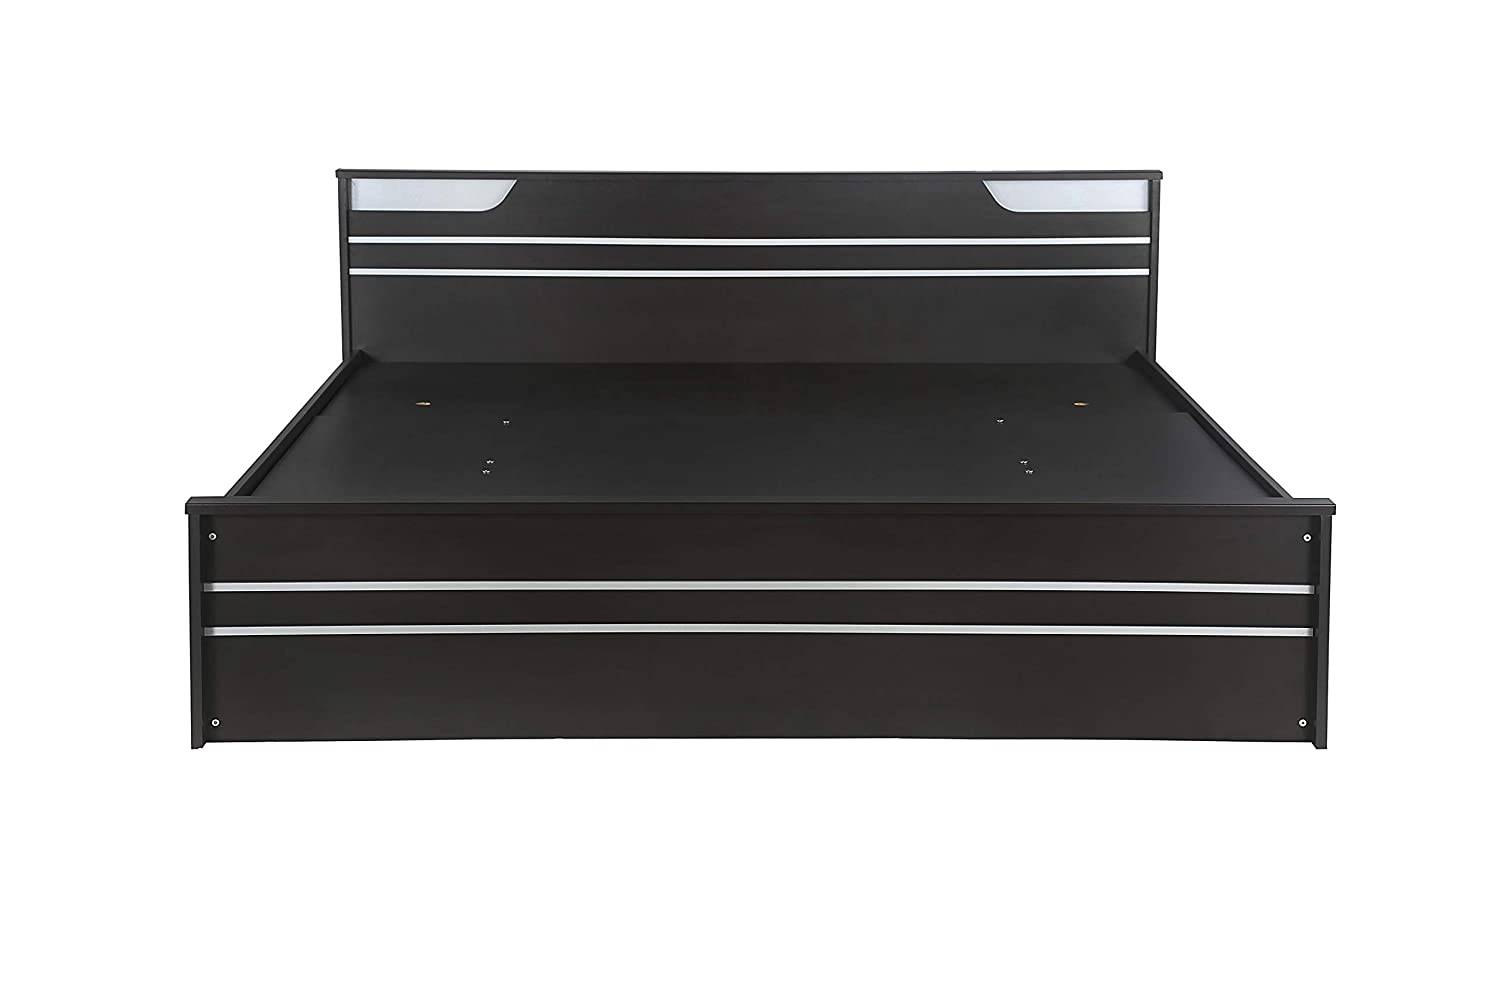 Zuari Neo Queen Hydraulic Half Lift On Storage Bed (Imperial Teak)